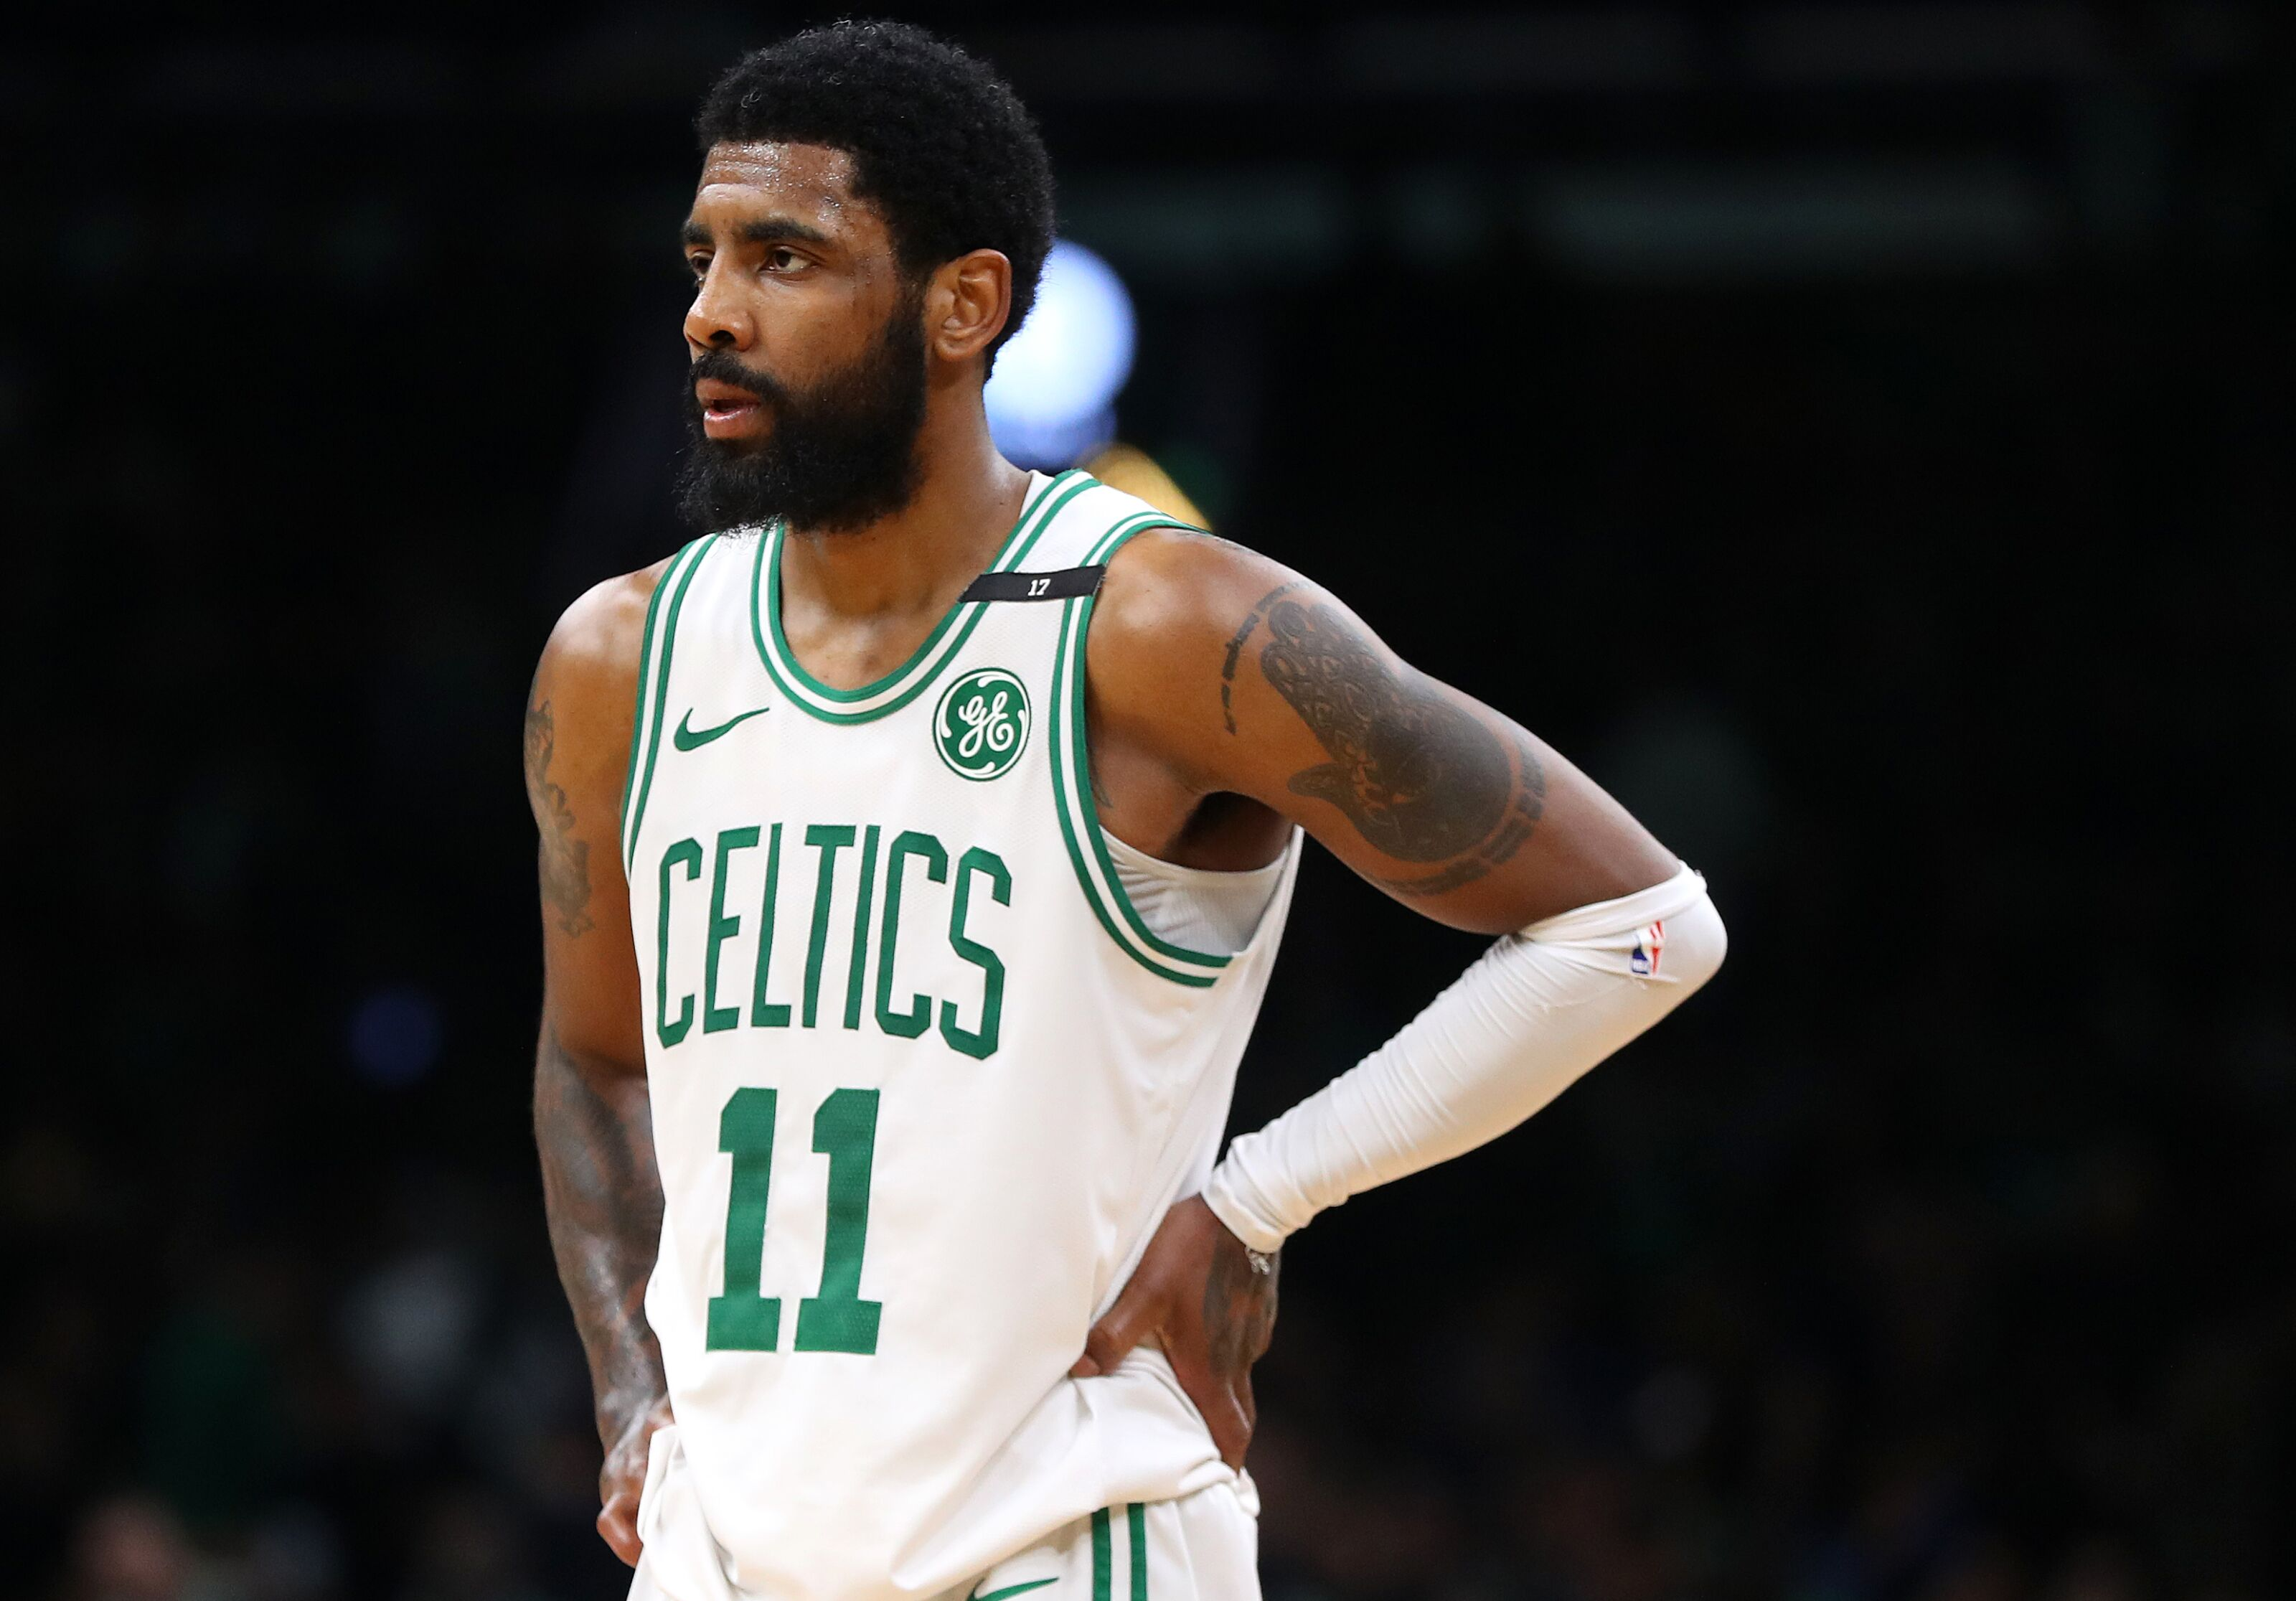 Chicago Bulls: Kyrie Irving lacking free agency suitors